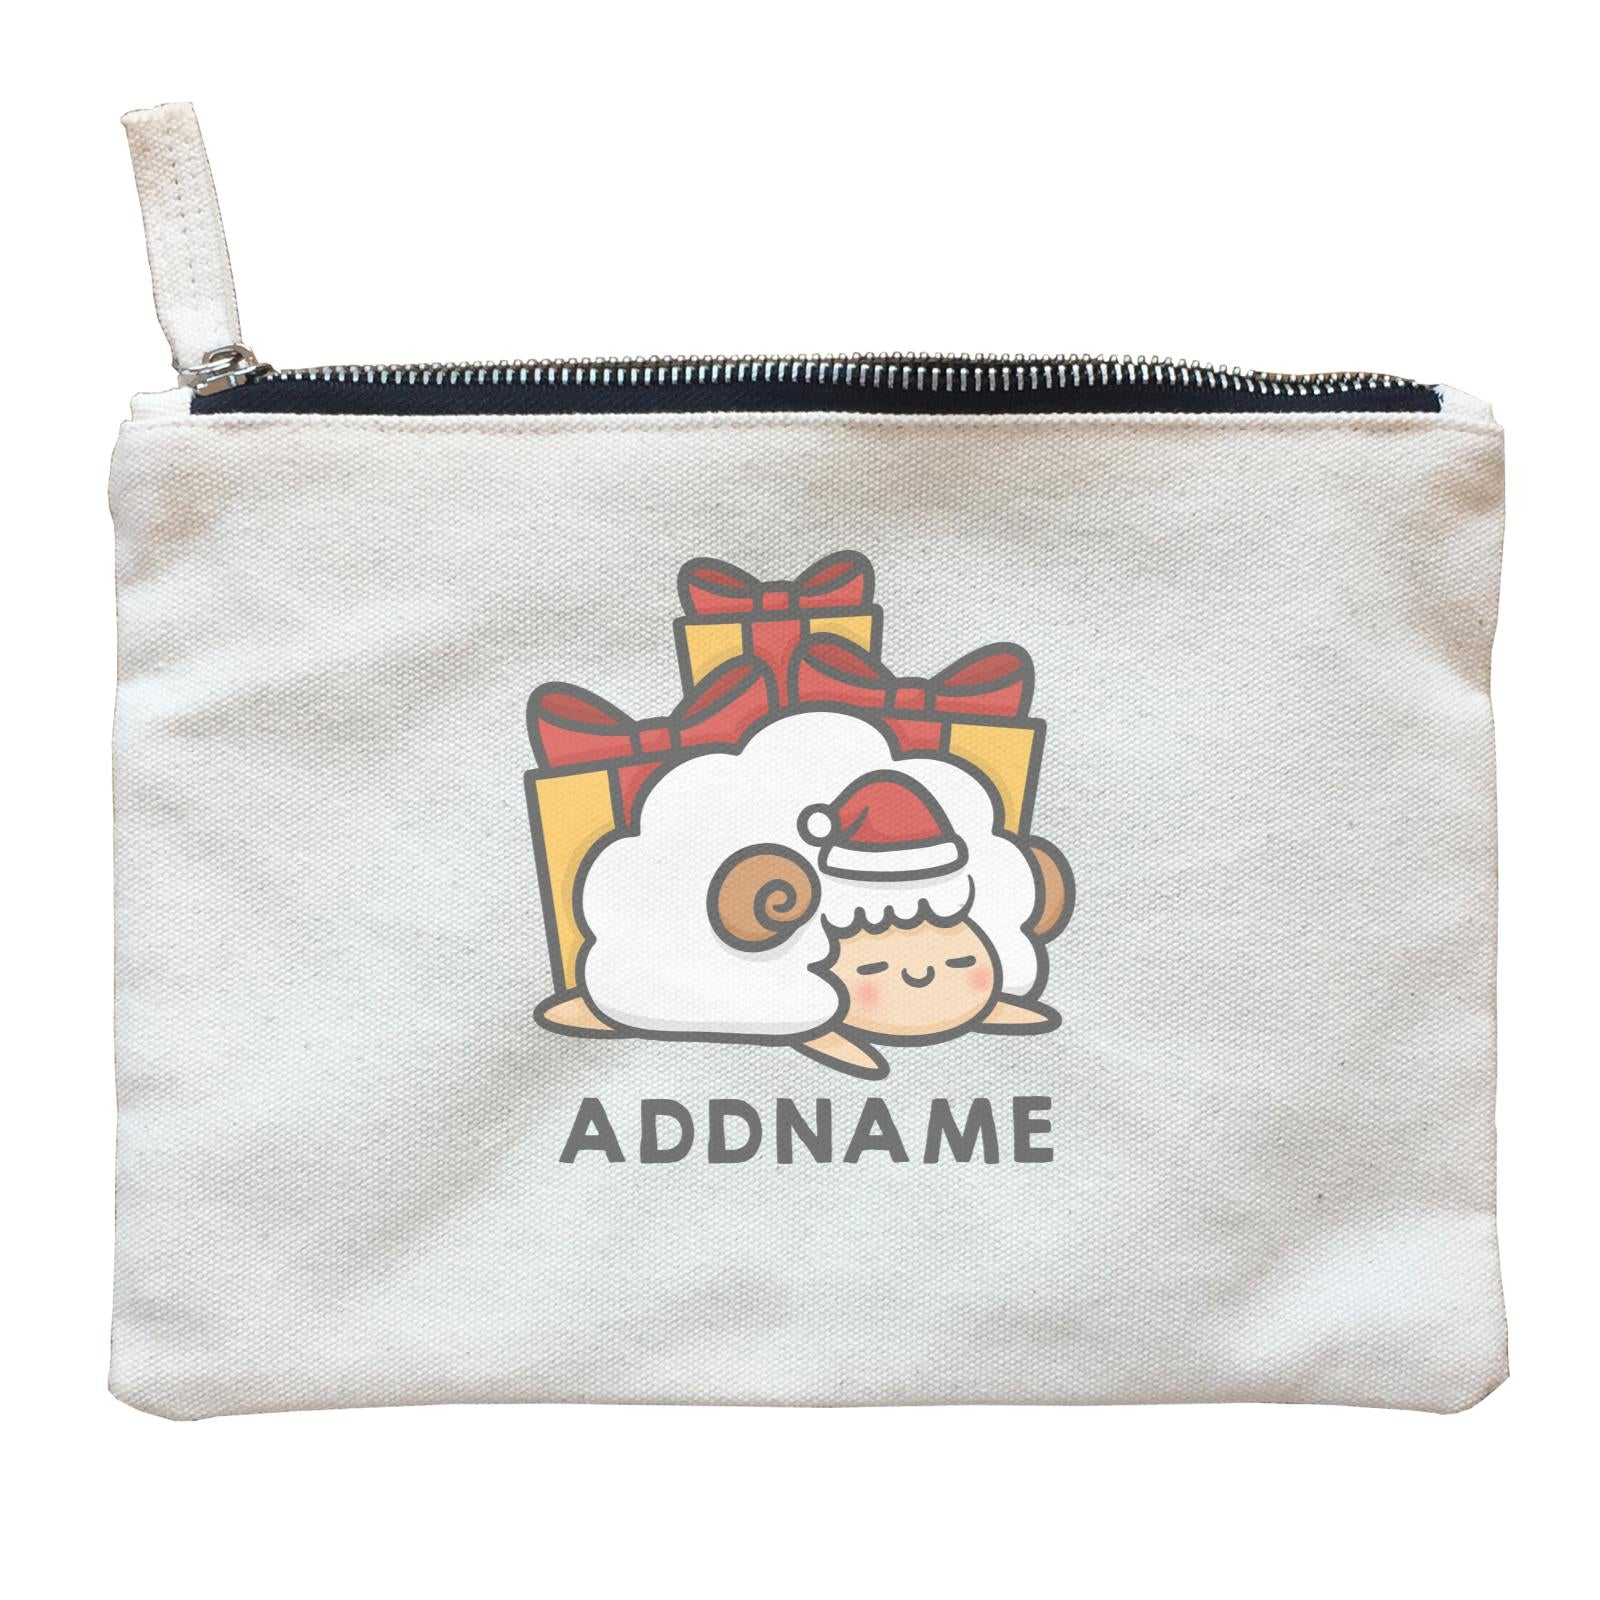 Xmas Cute Sleeping Sheep Addname Accessories Zipper Pouch